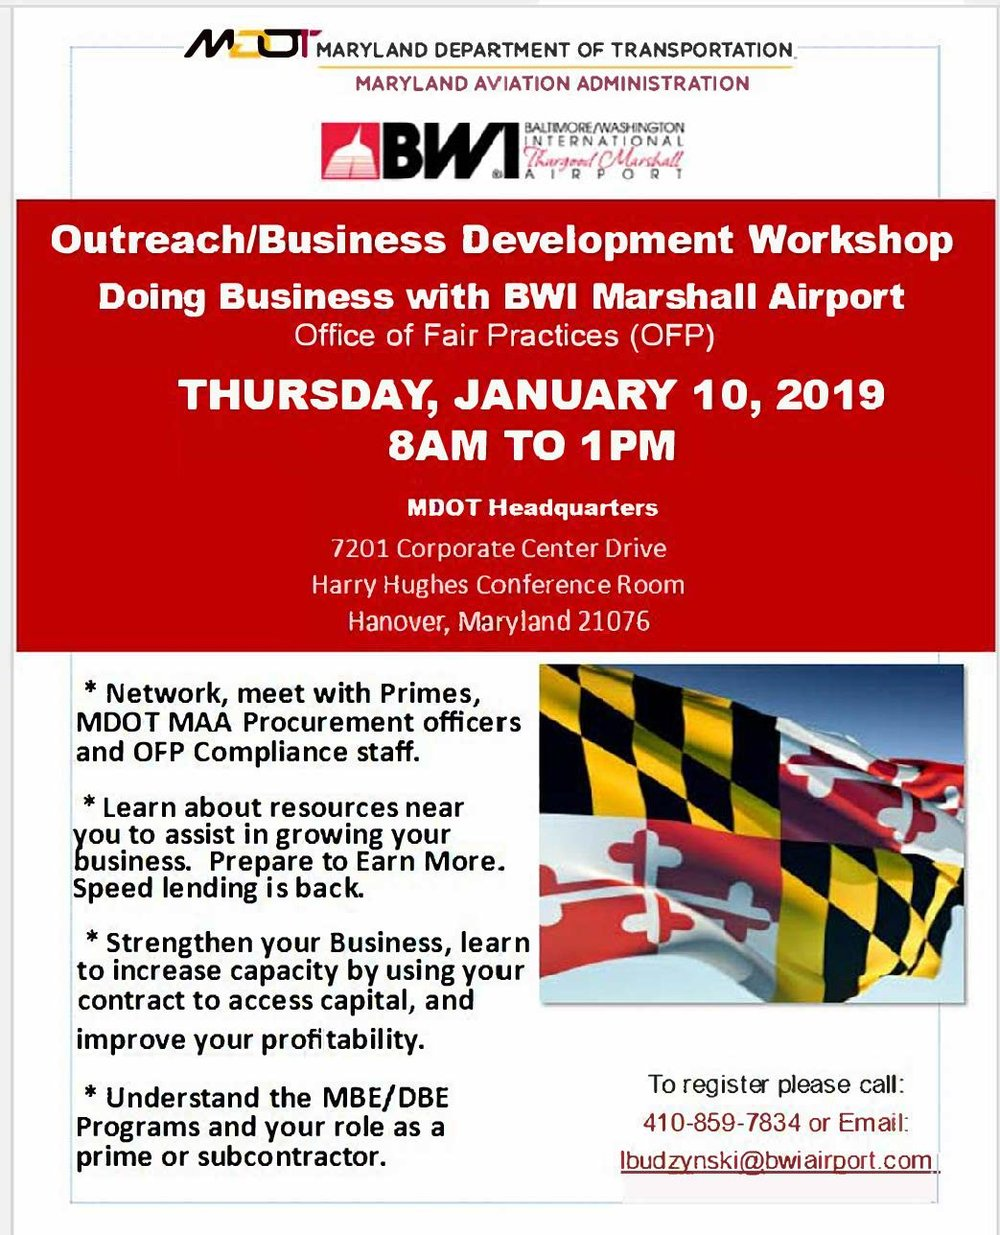 MDOT MVA Doing Business with BWI Marshall Airport Flier.jan2019-page-001.jpg